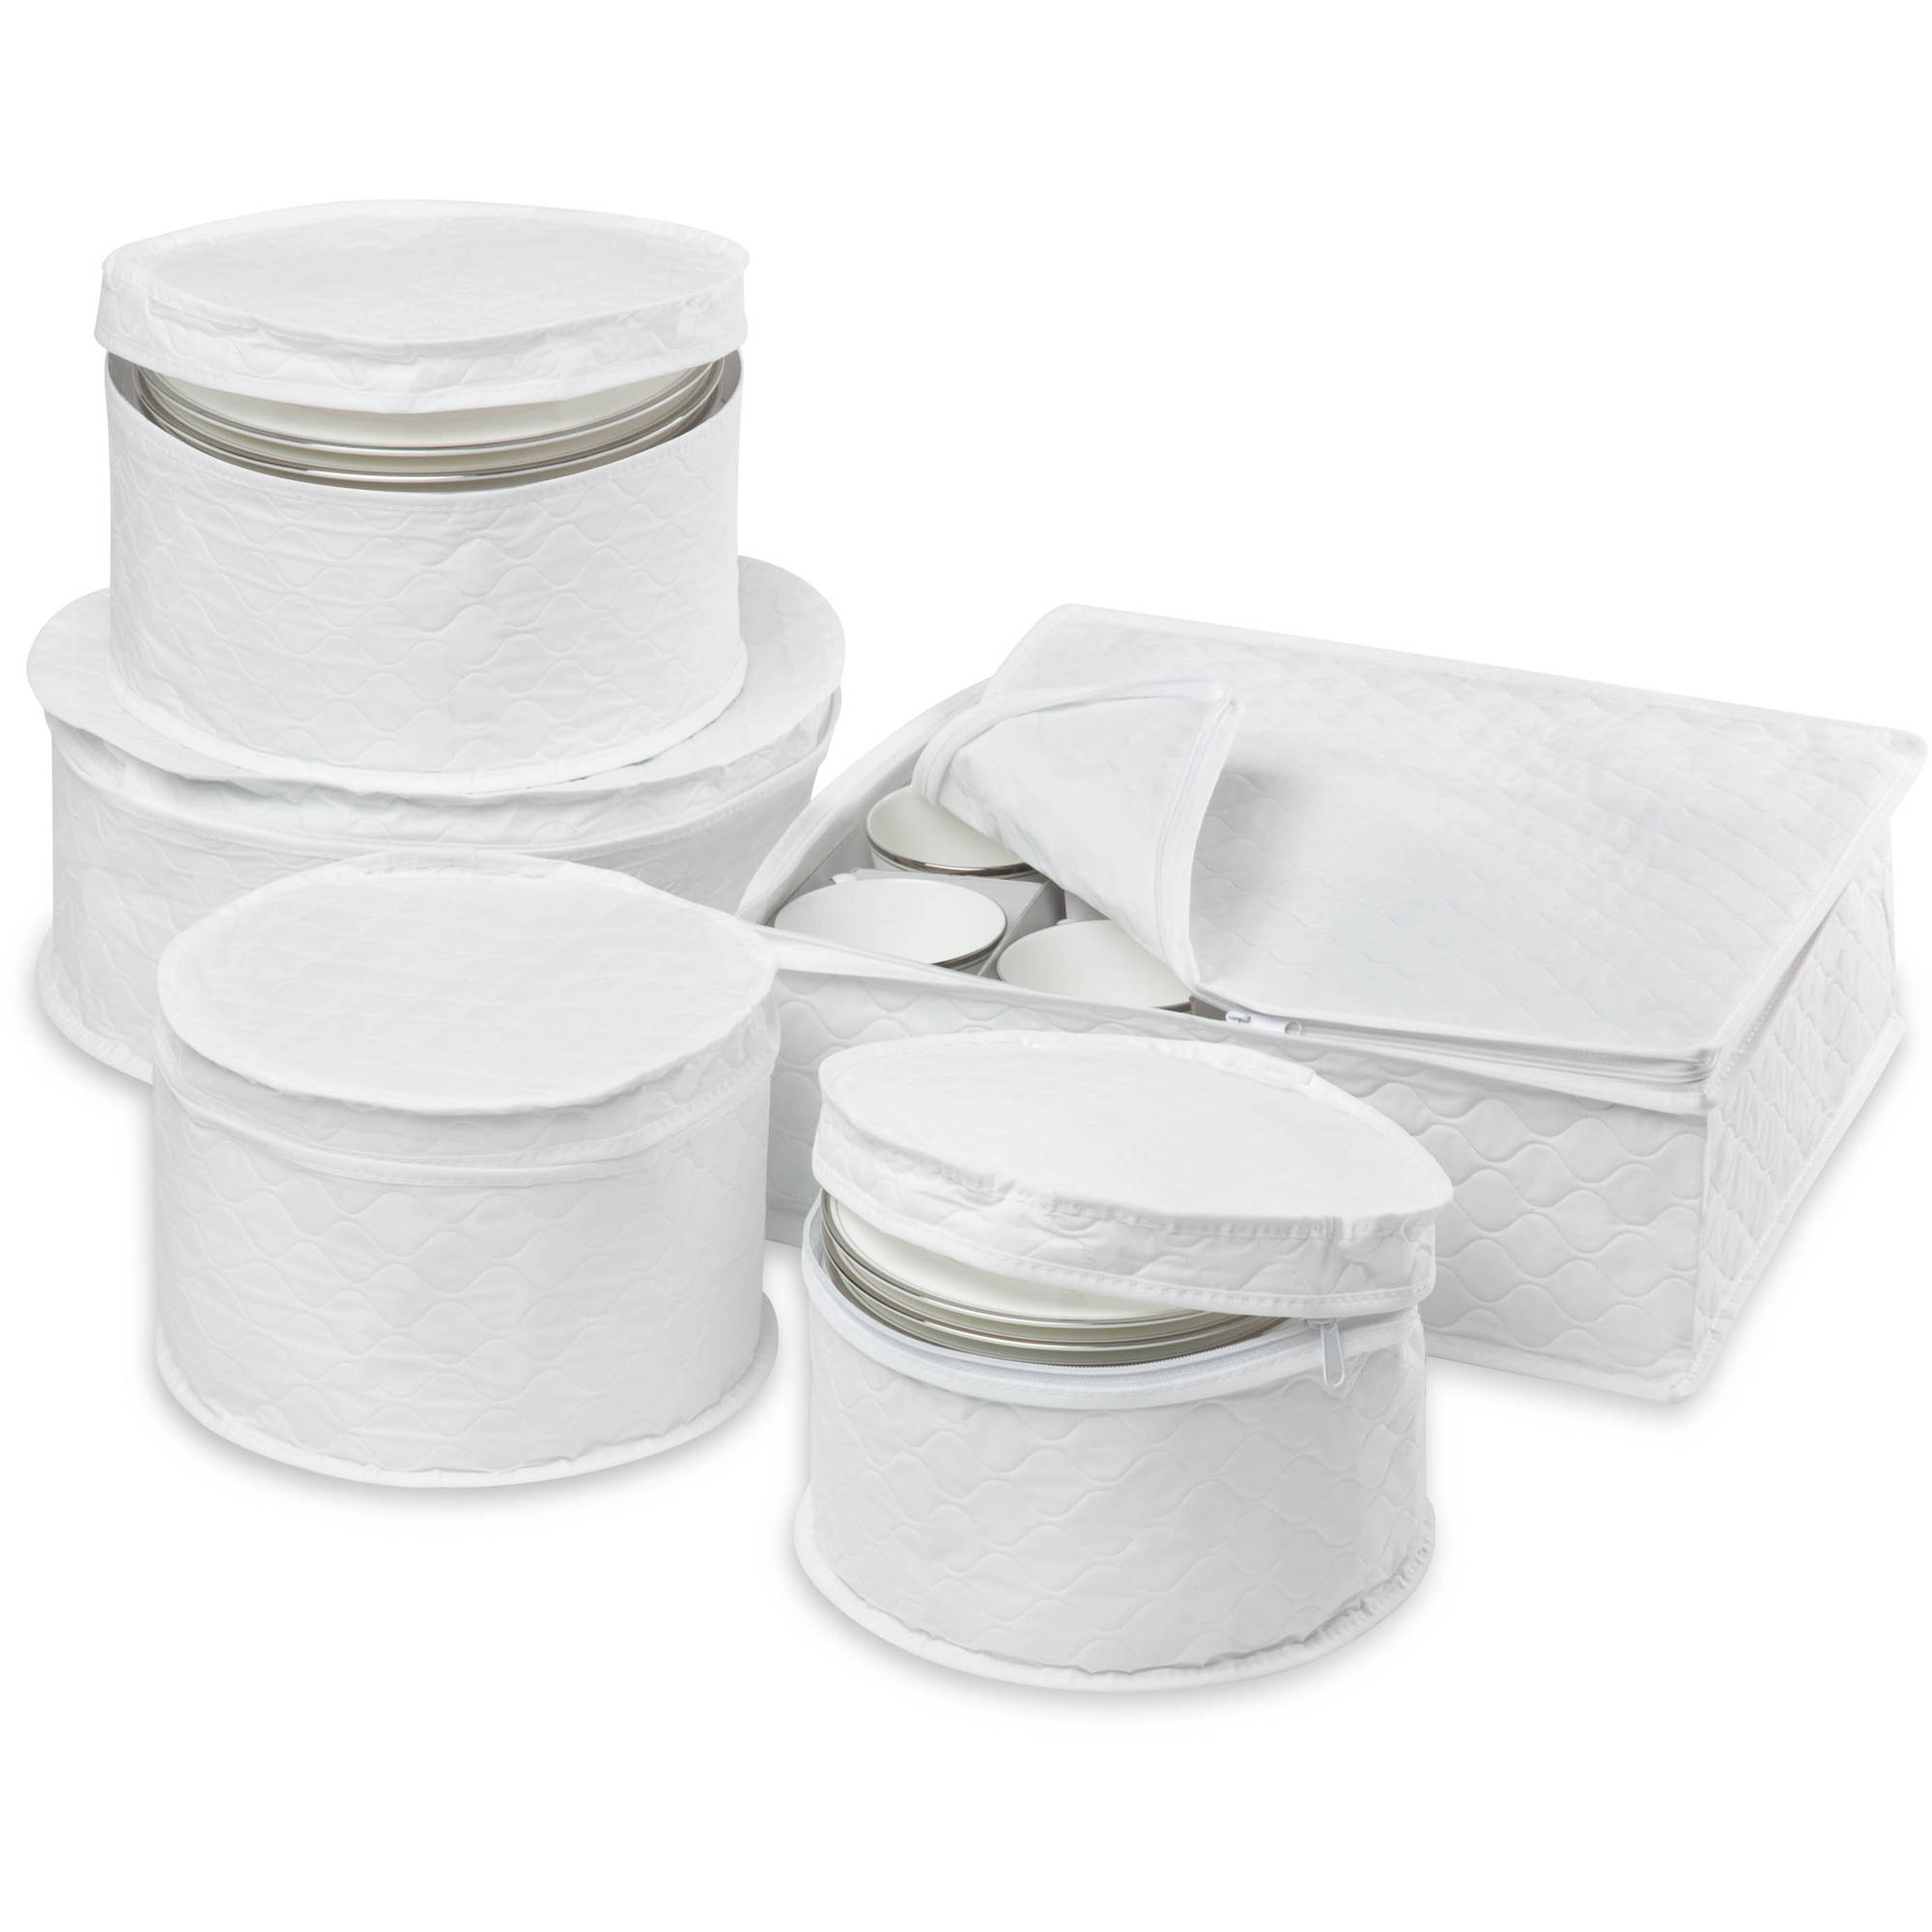 Merveilleux Honey Can Do 5pc Dinnerware Storage Set With Stay Closed Cases, White